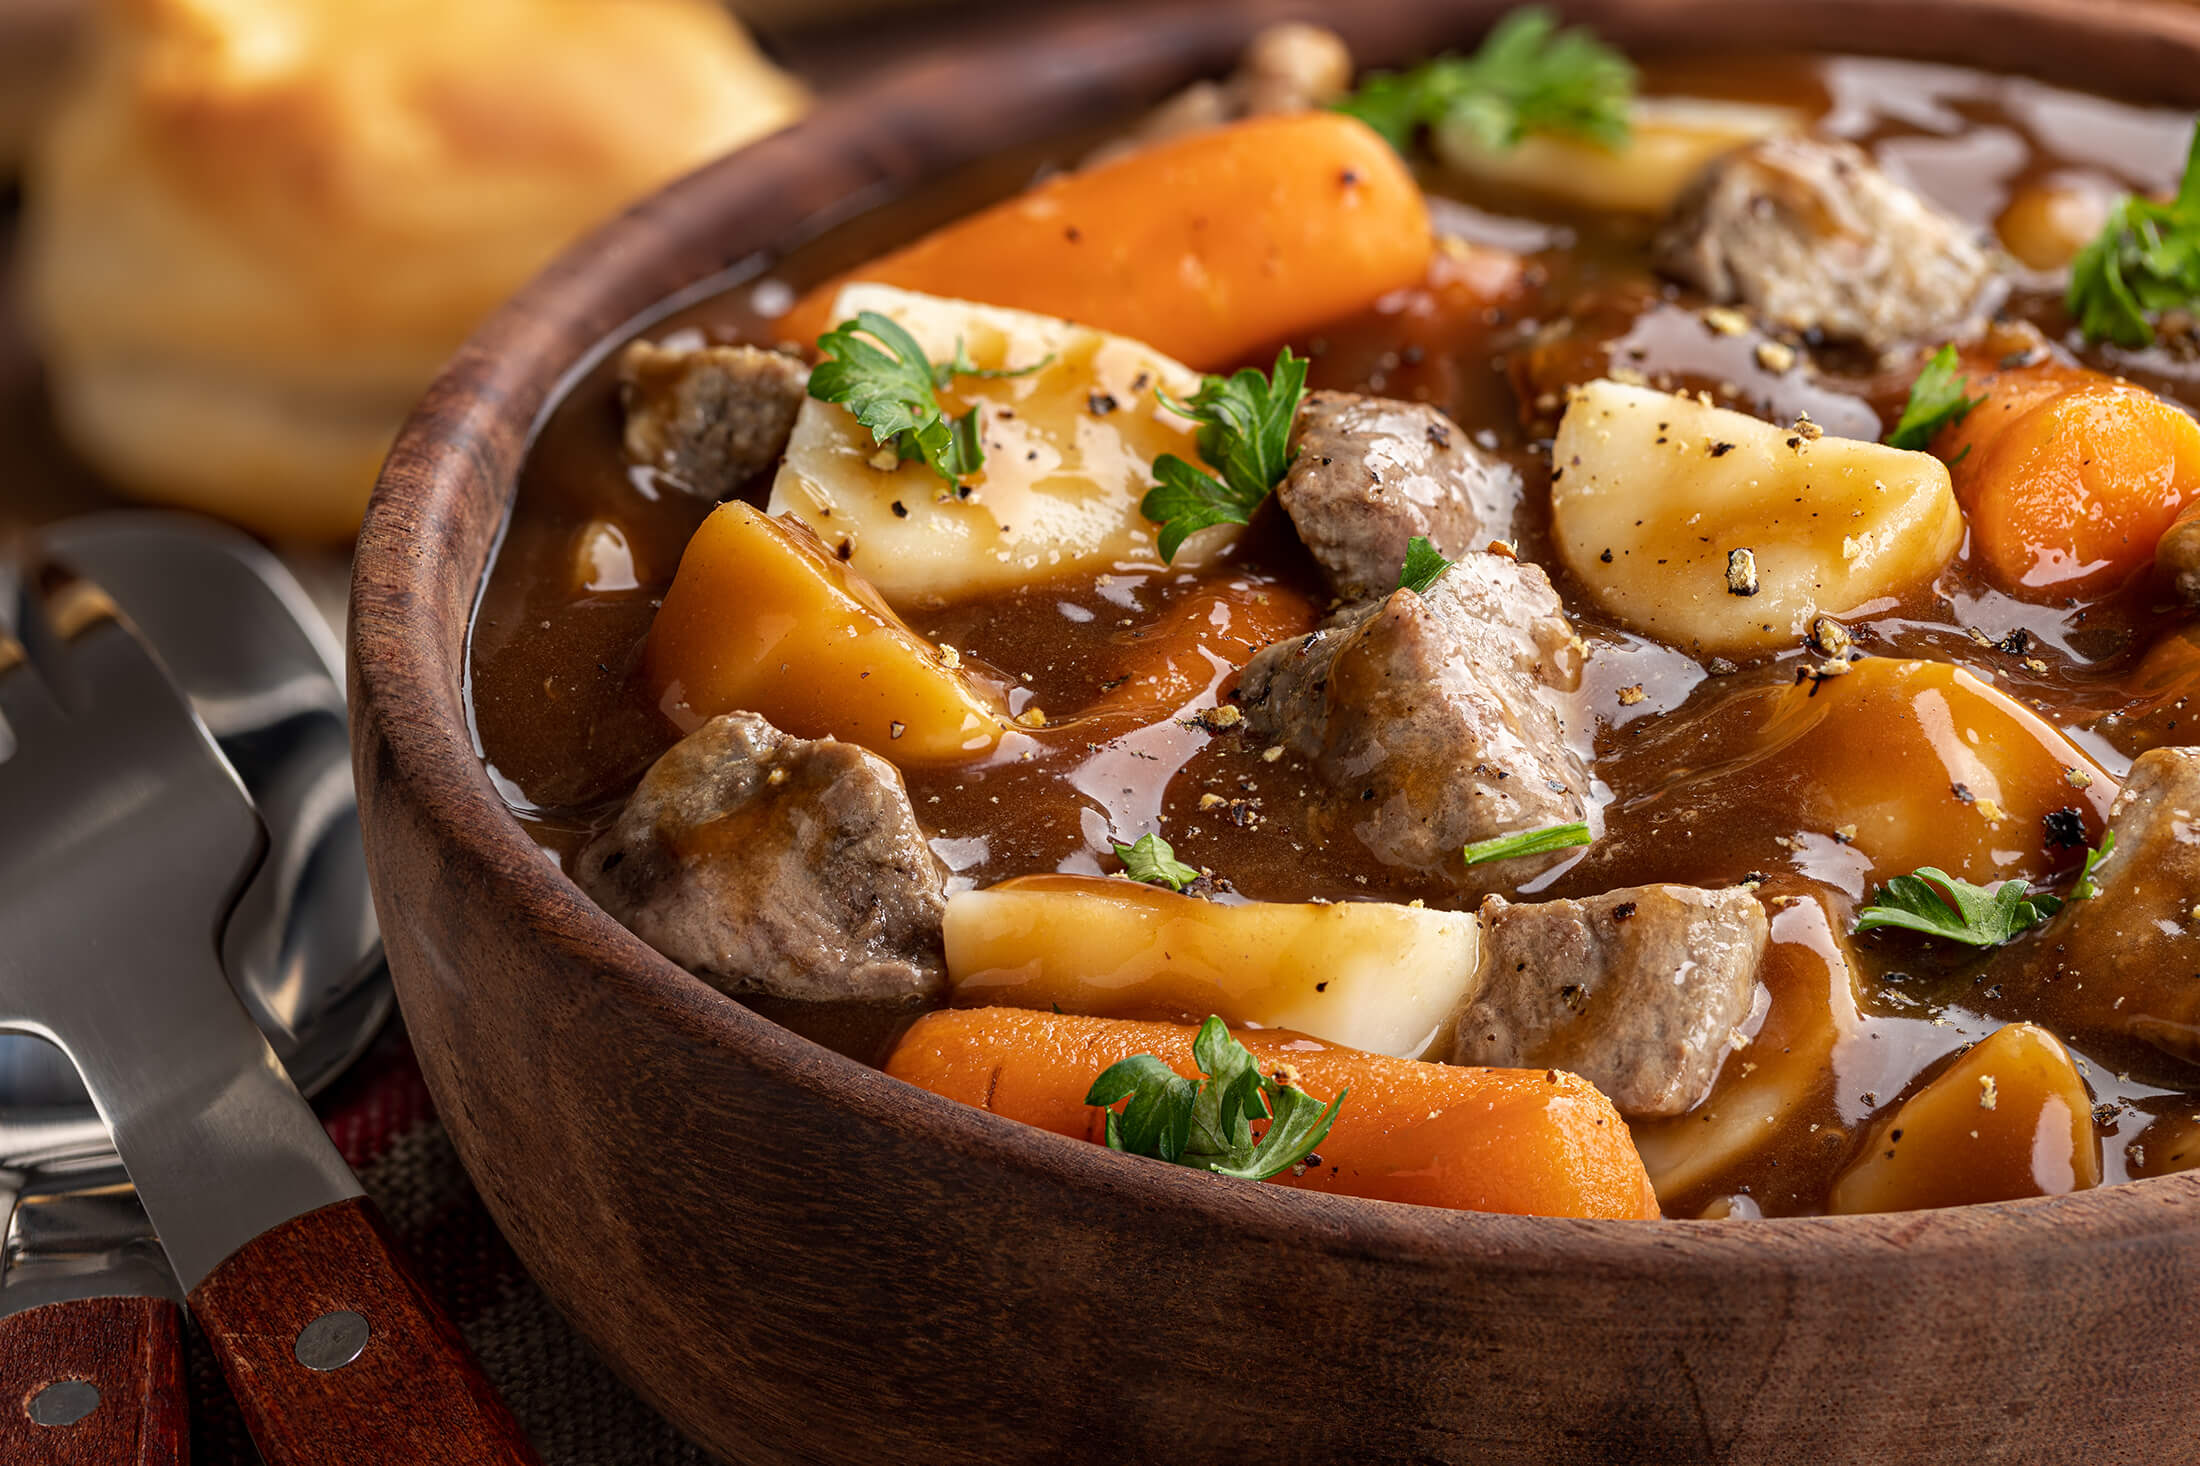 A nice bowl of stew